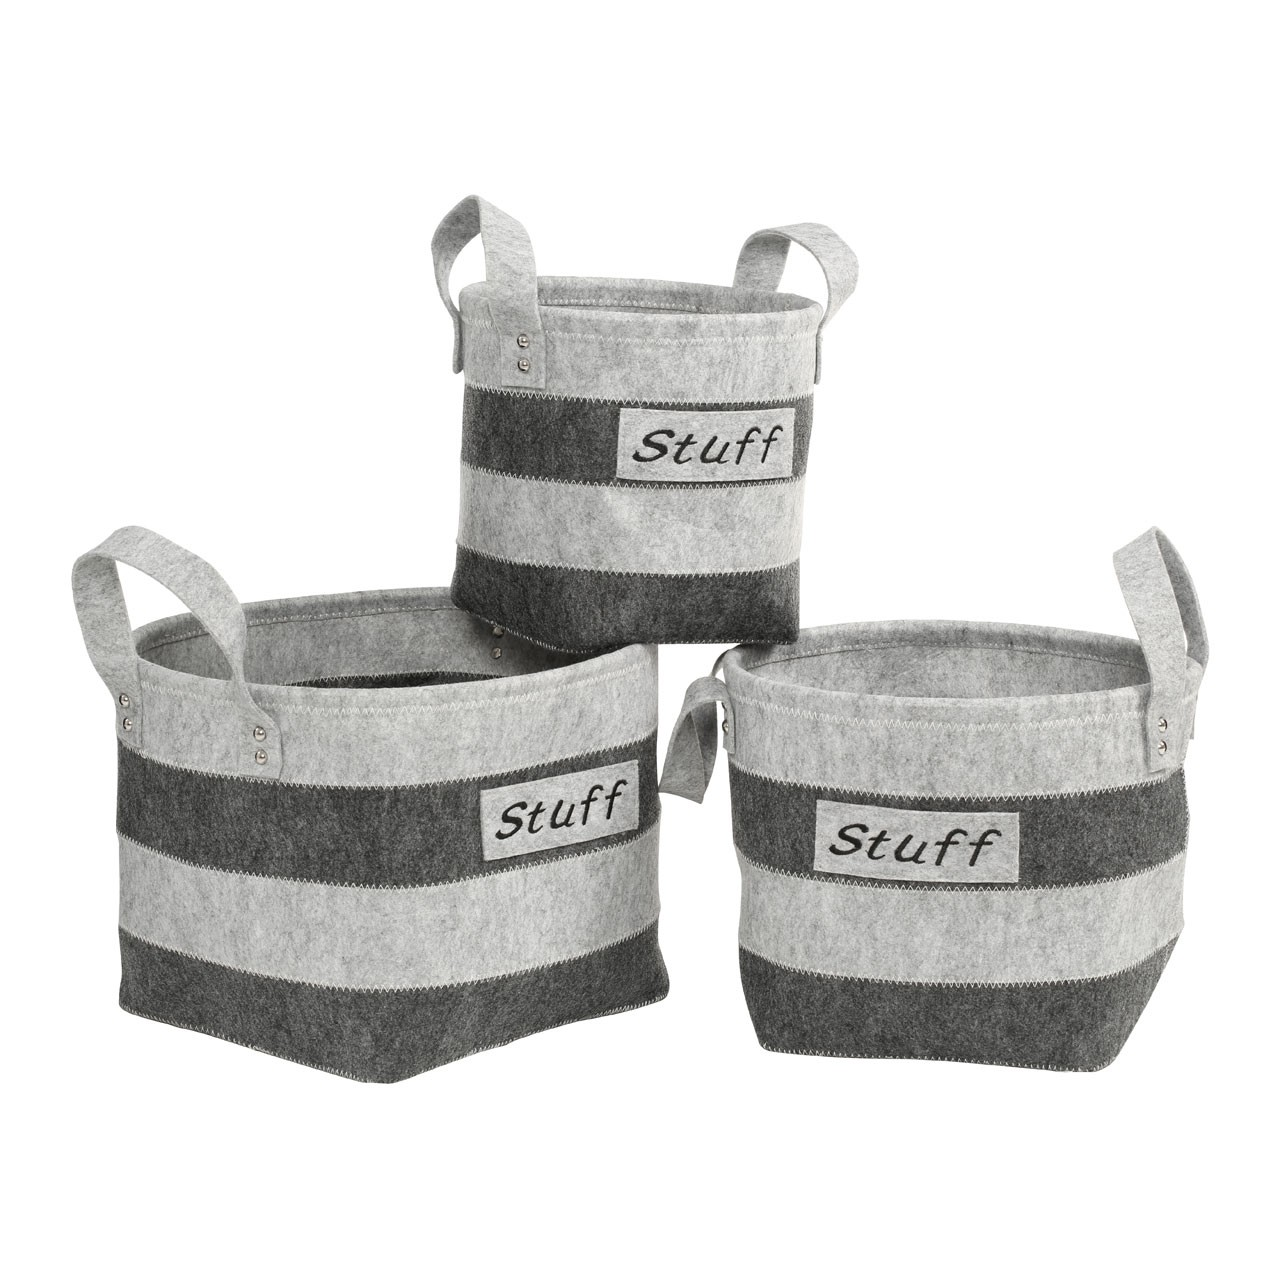 Prime Furnishing Stuff Storage Baskets, Dark/Light Grey - Set Of